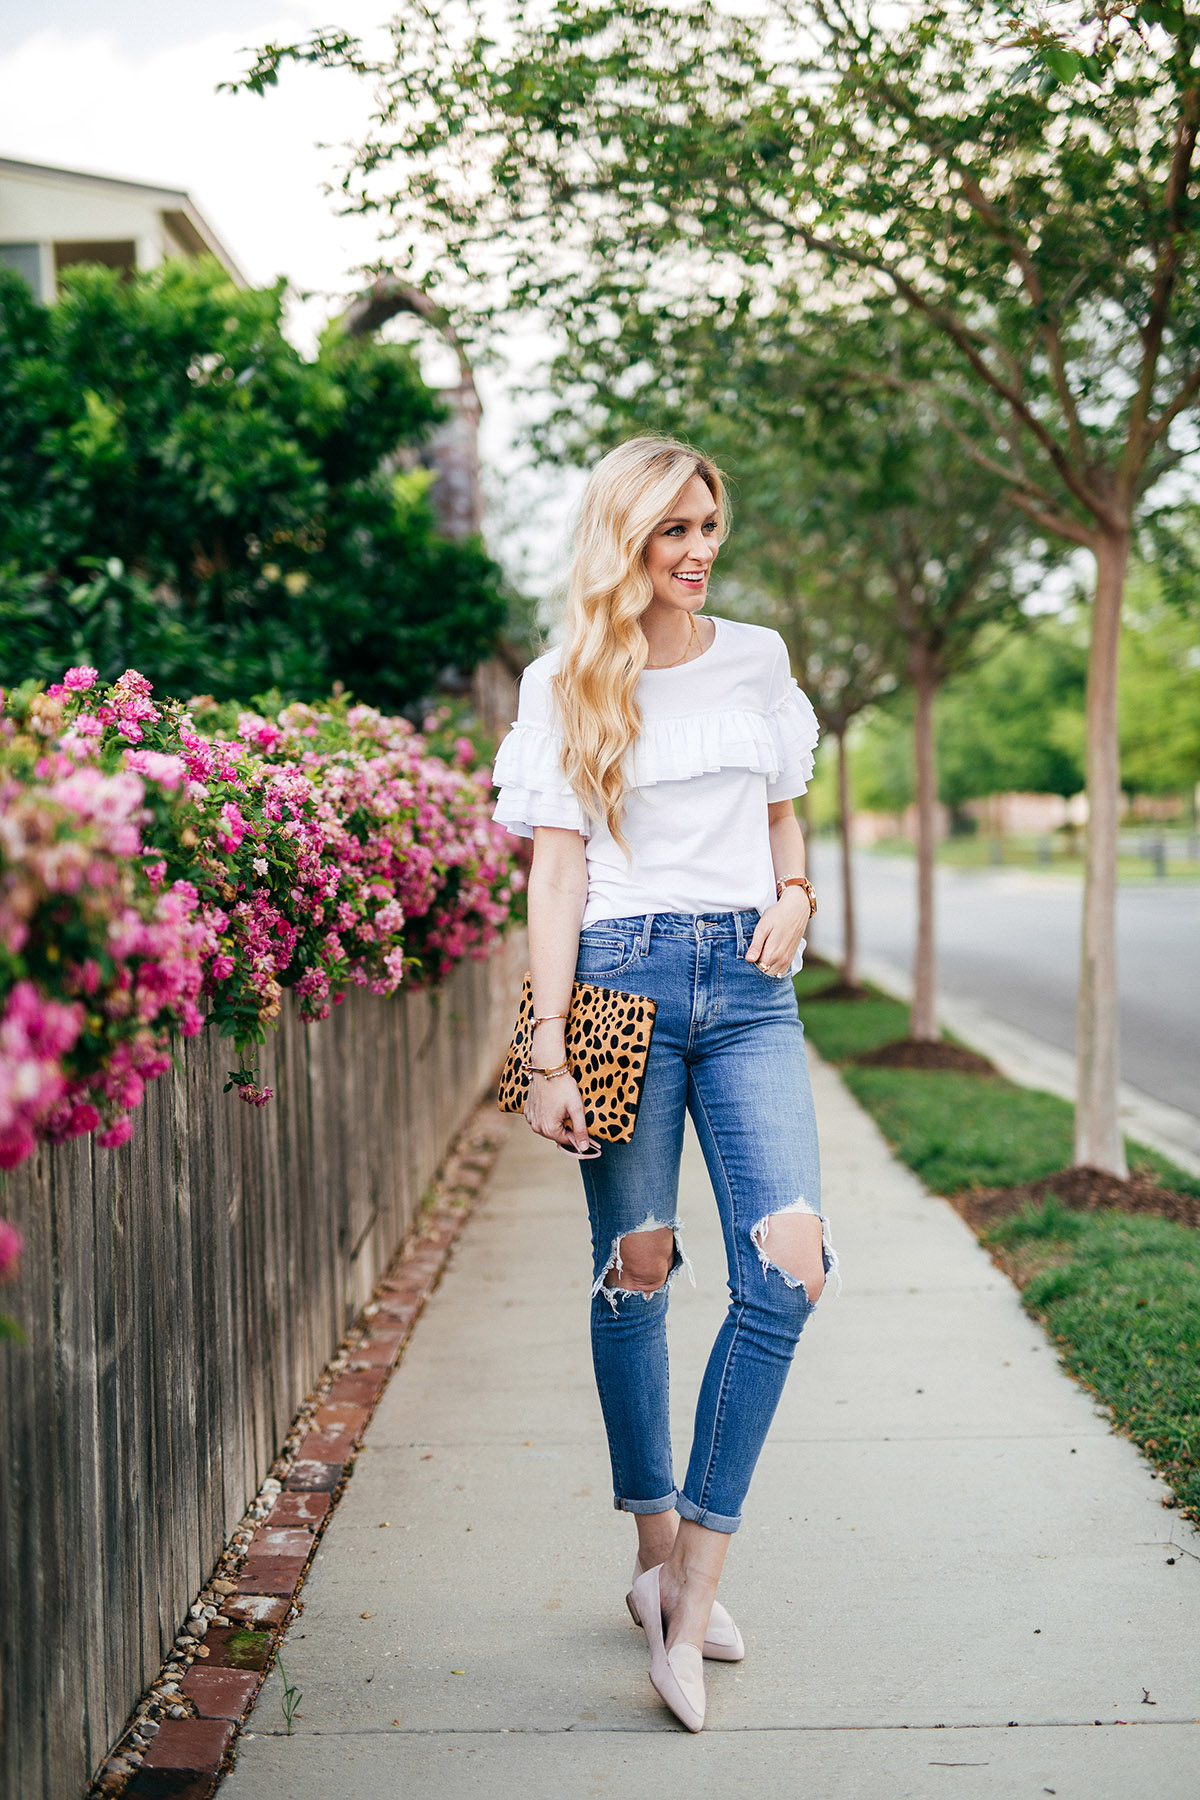 Ways to Wear the Summer Tee | Banana Republic summer t-shirt styles